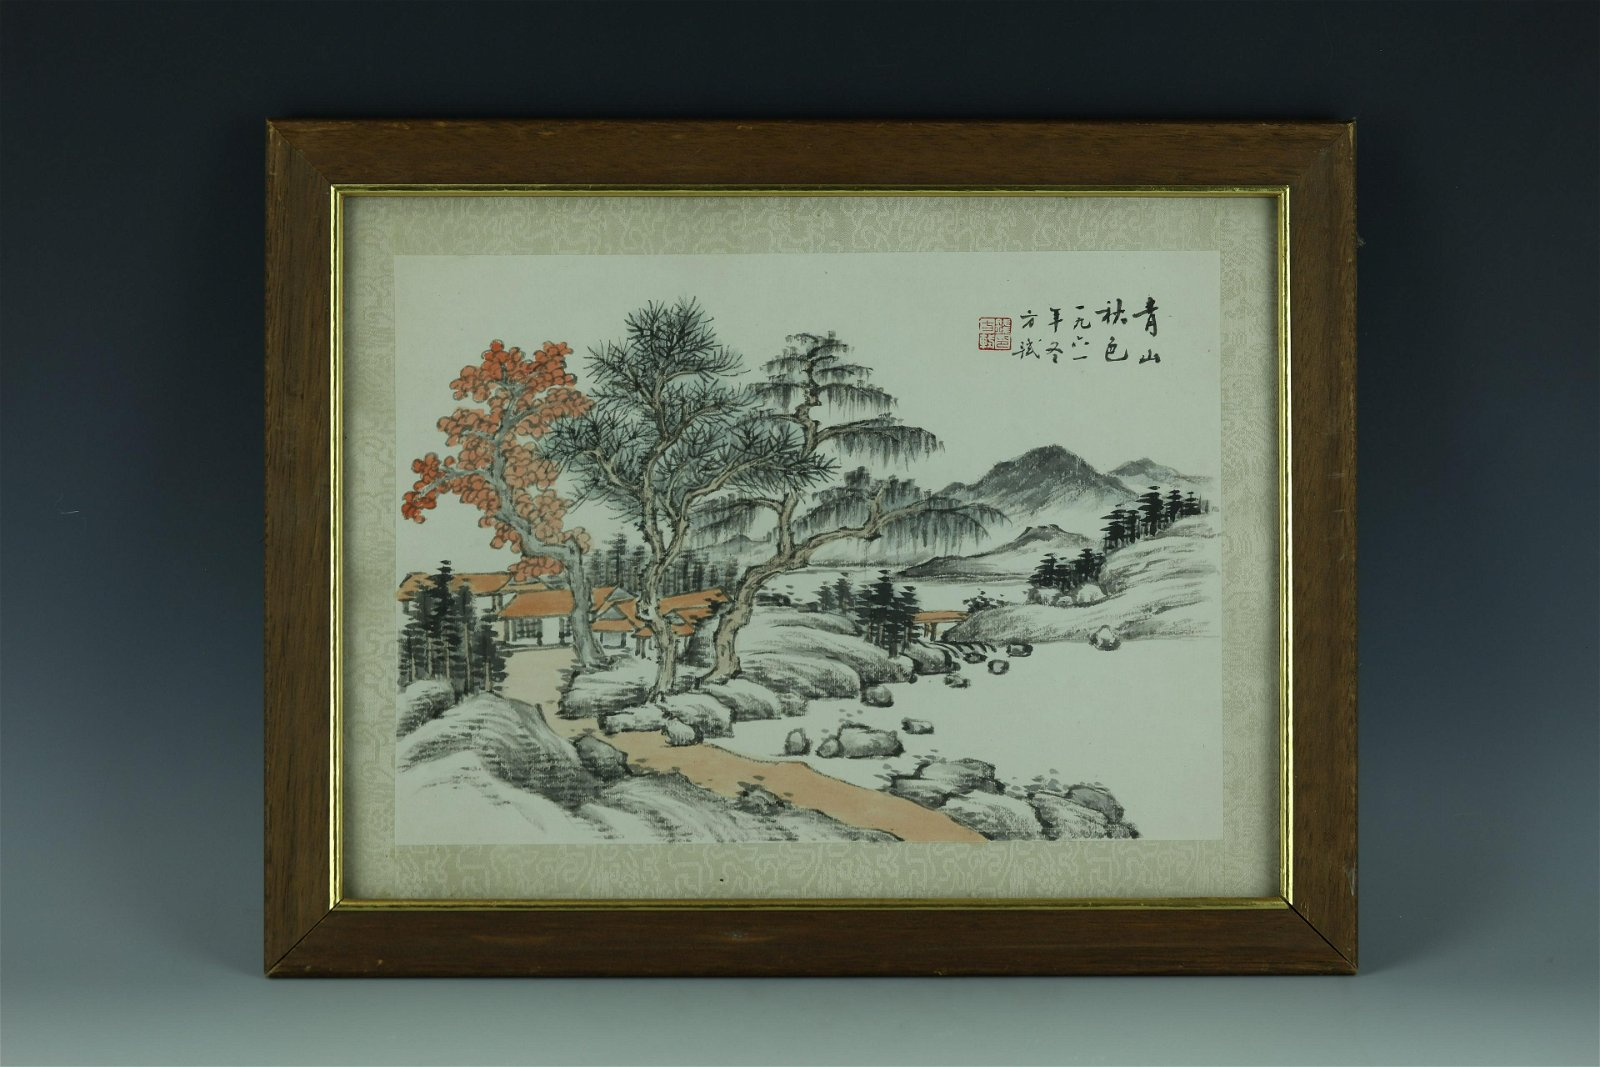 A Chinese Landscape Painting by Qian Fangshi